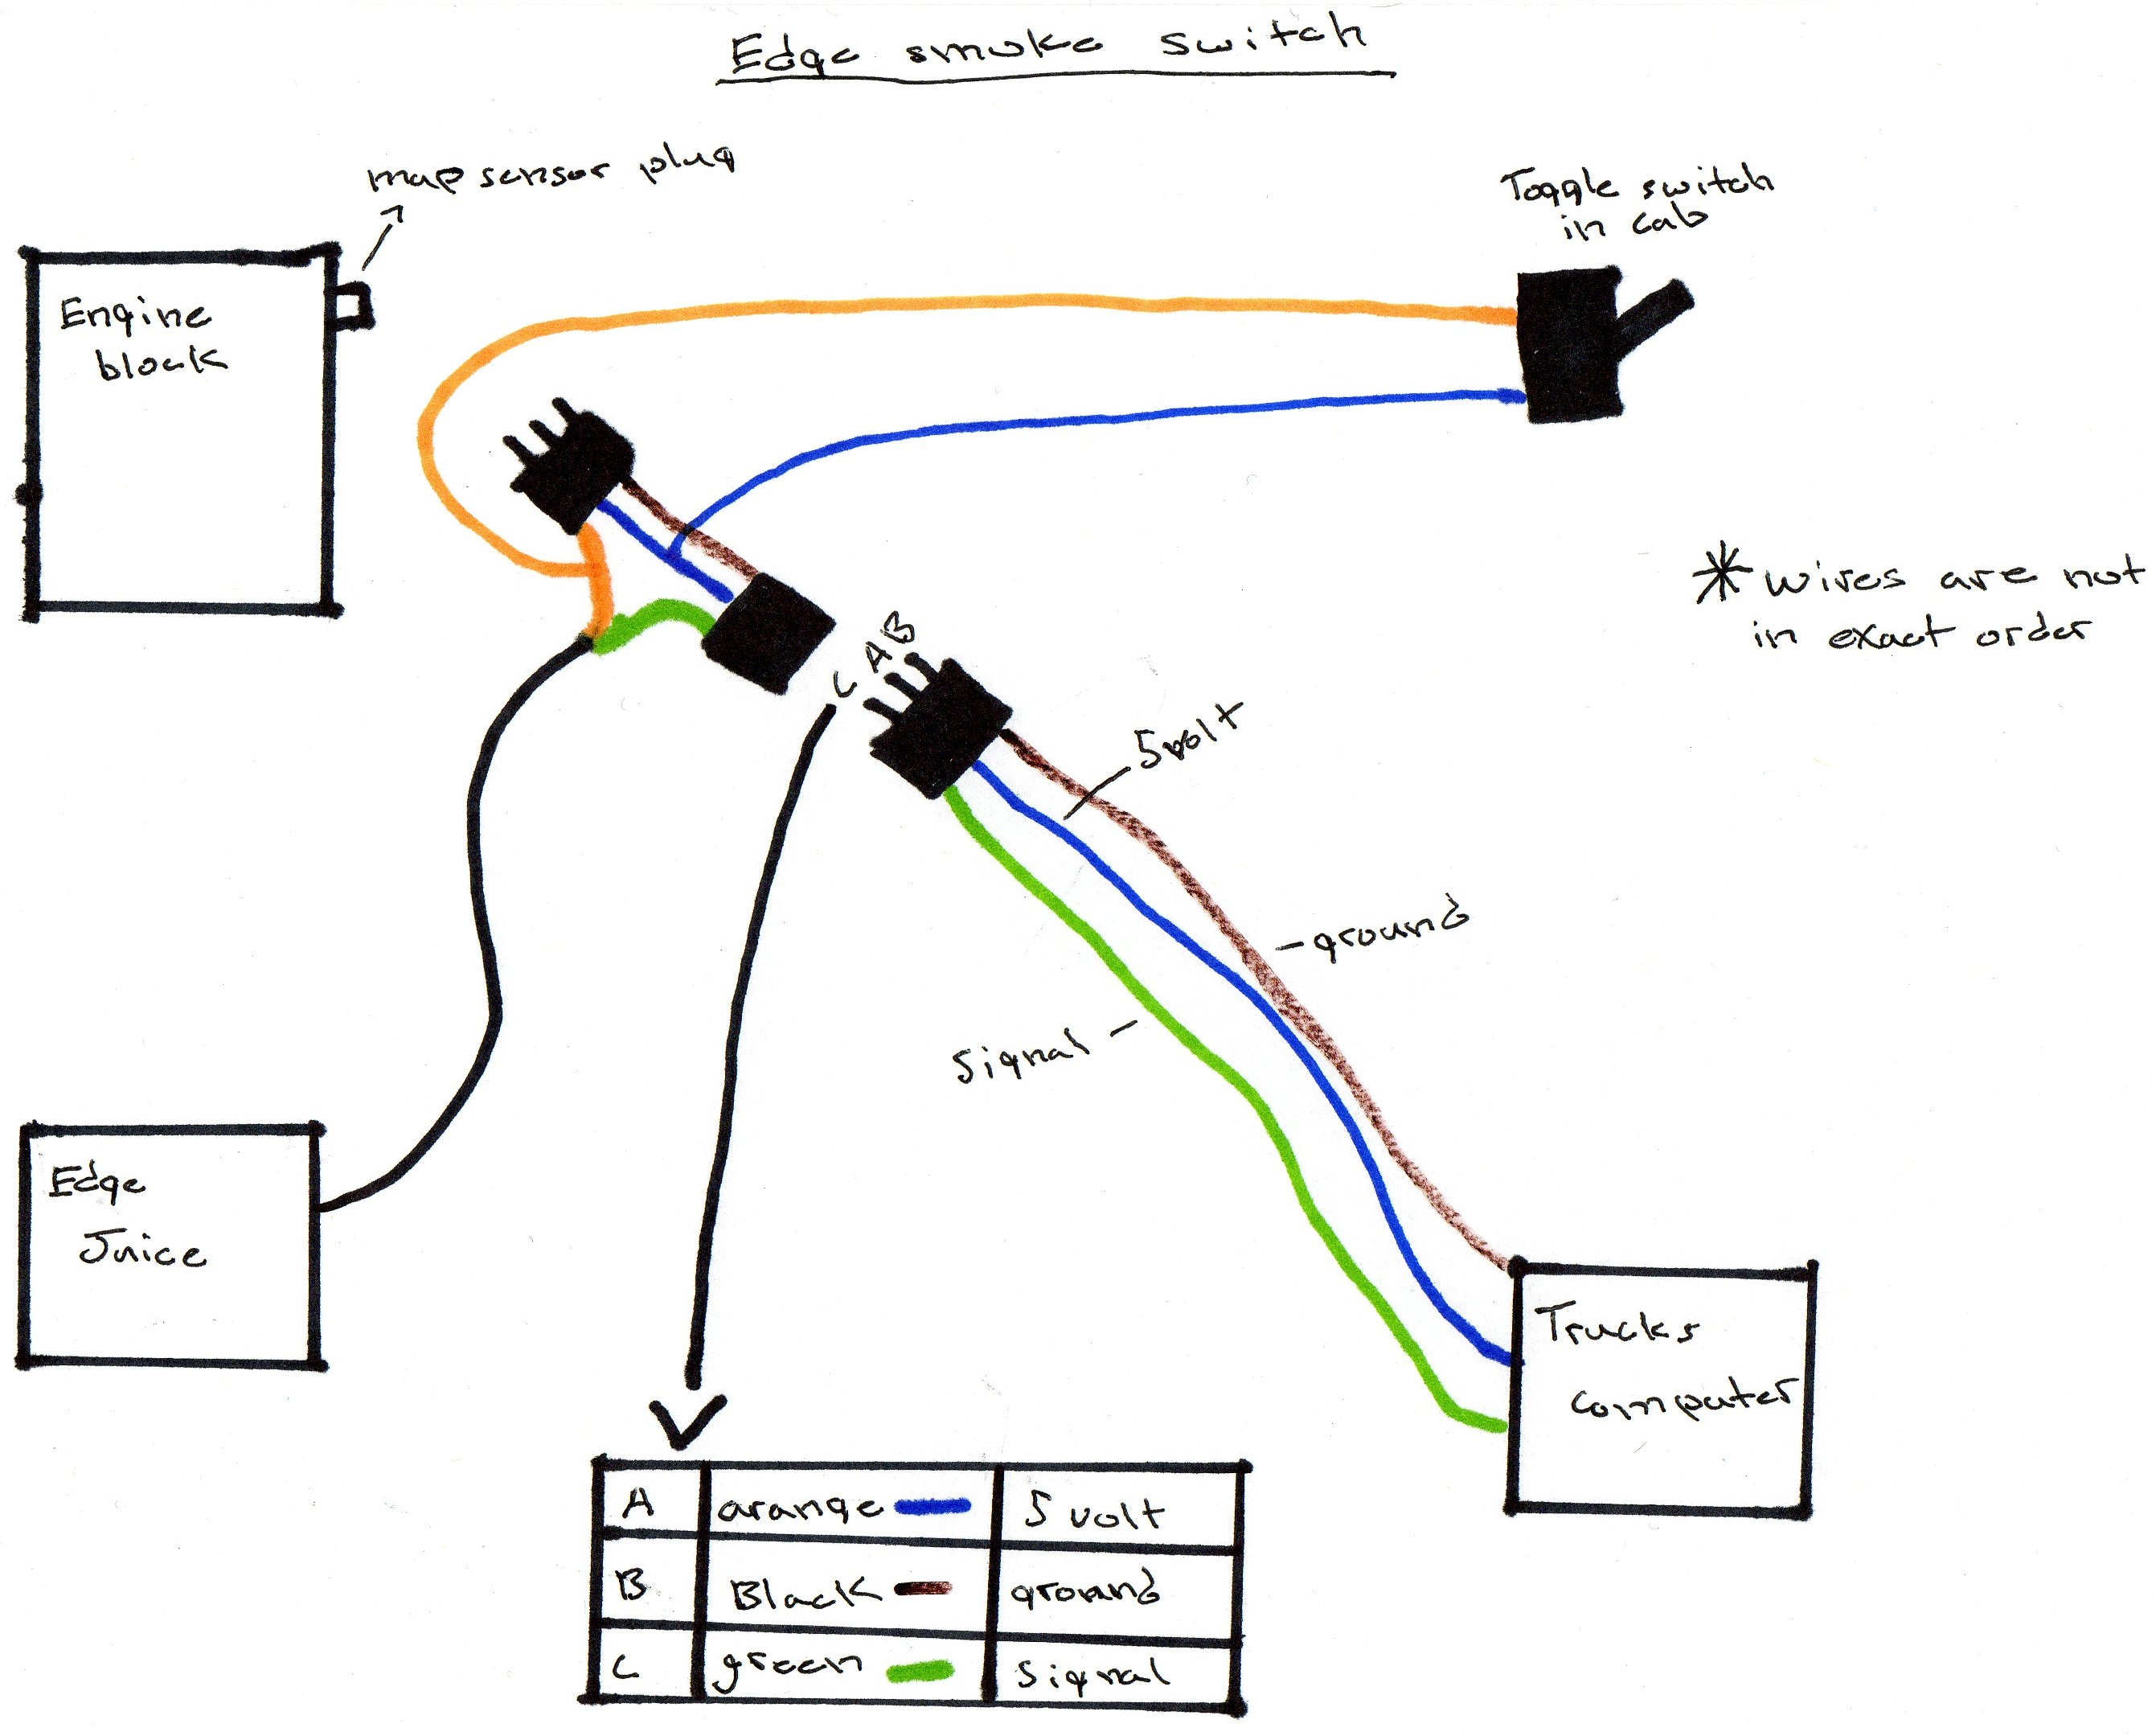 2012 Silverado Map Sensor Wiring Diagram Library Speaker Wire Click Image For Larger Version Name Edge Smoke Switch Views 19159 Size